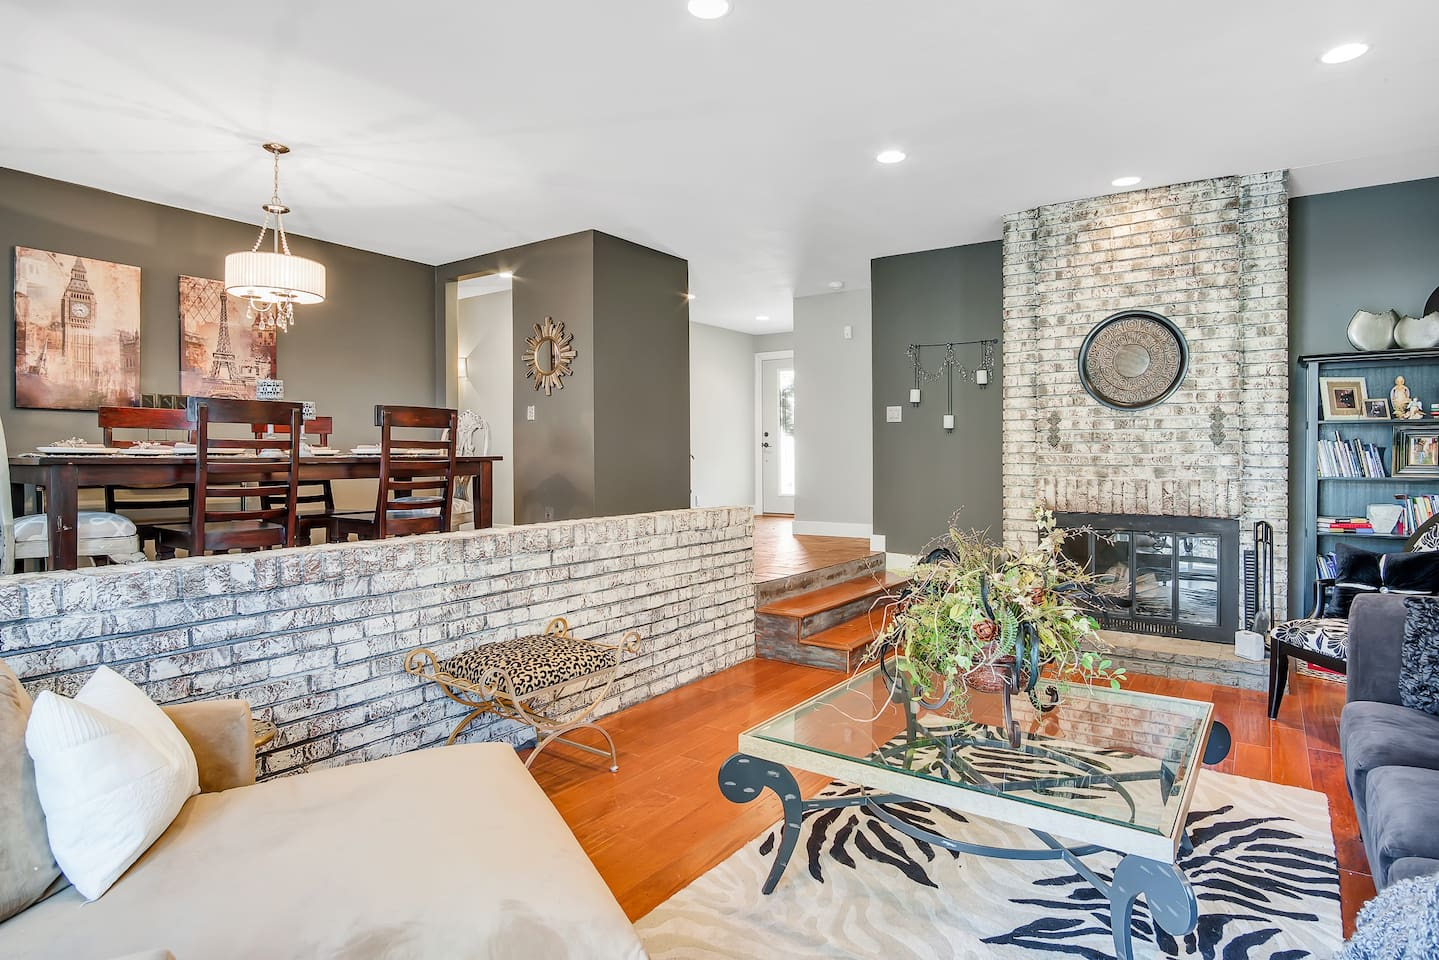 200 Sq foot ranch home w sunken living room, wood burning fireplace